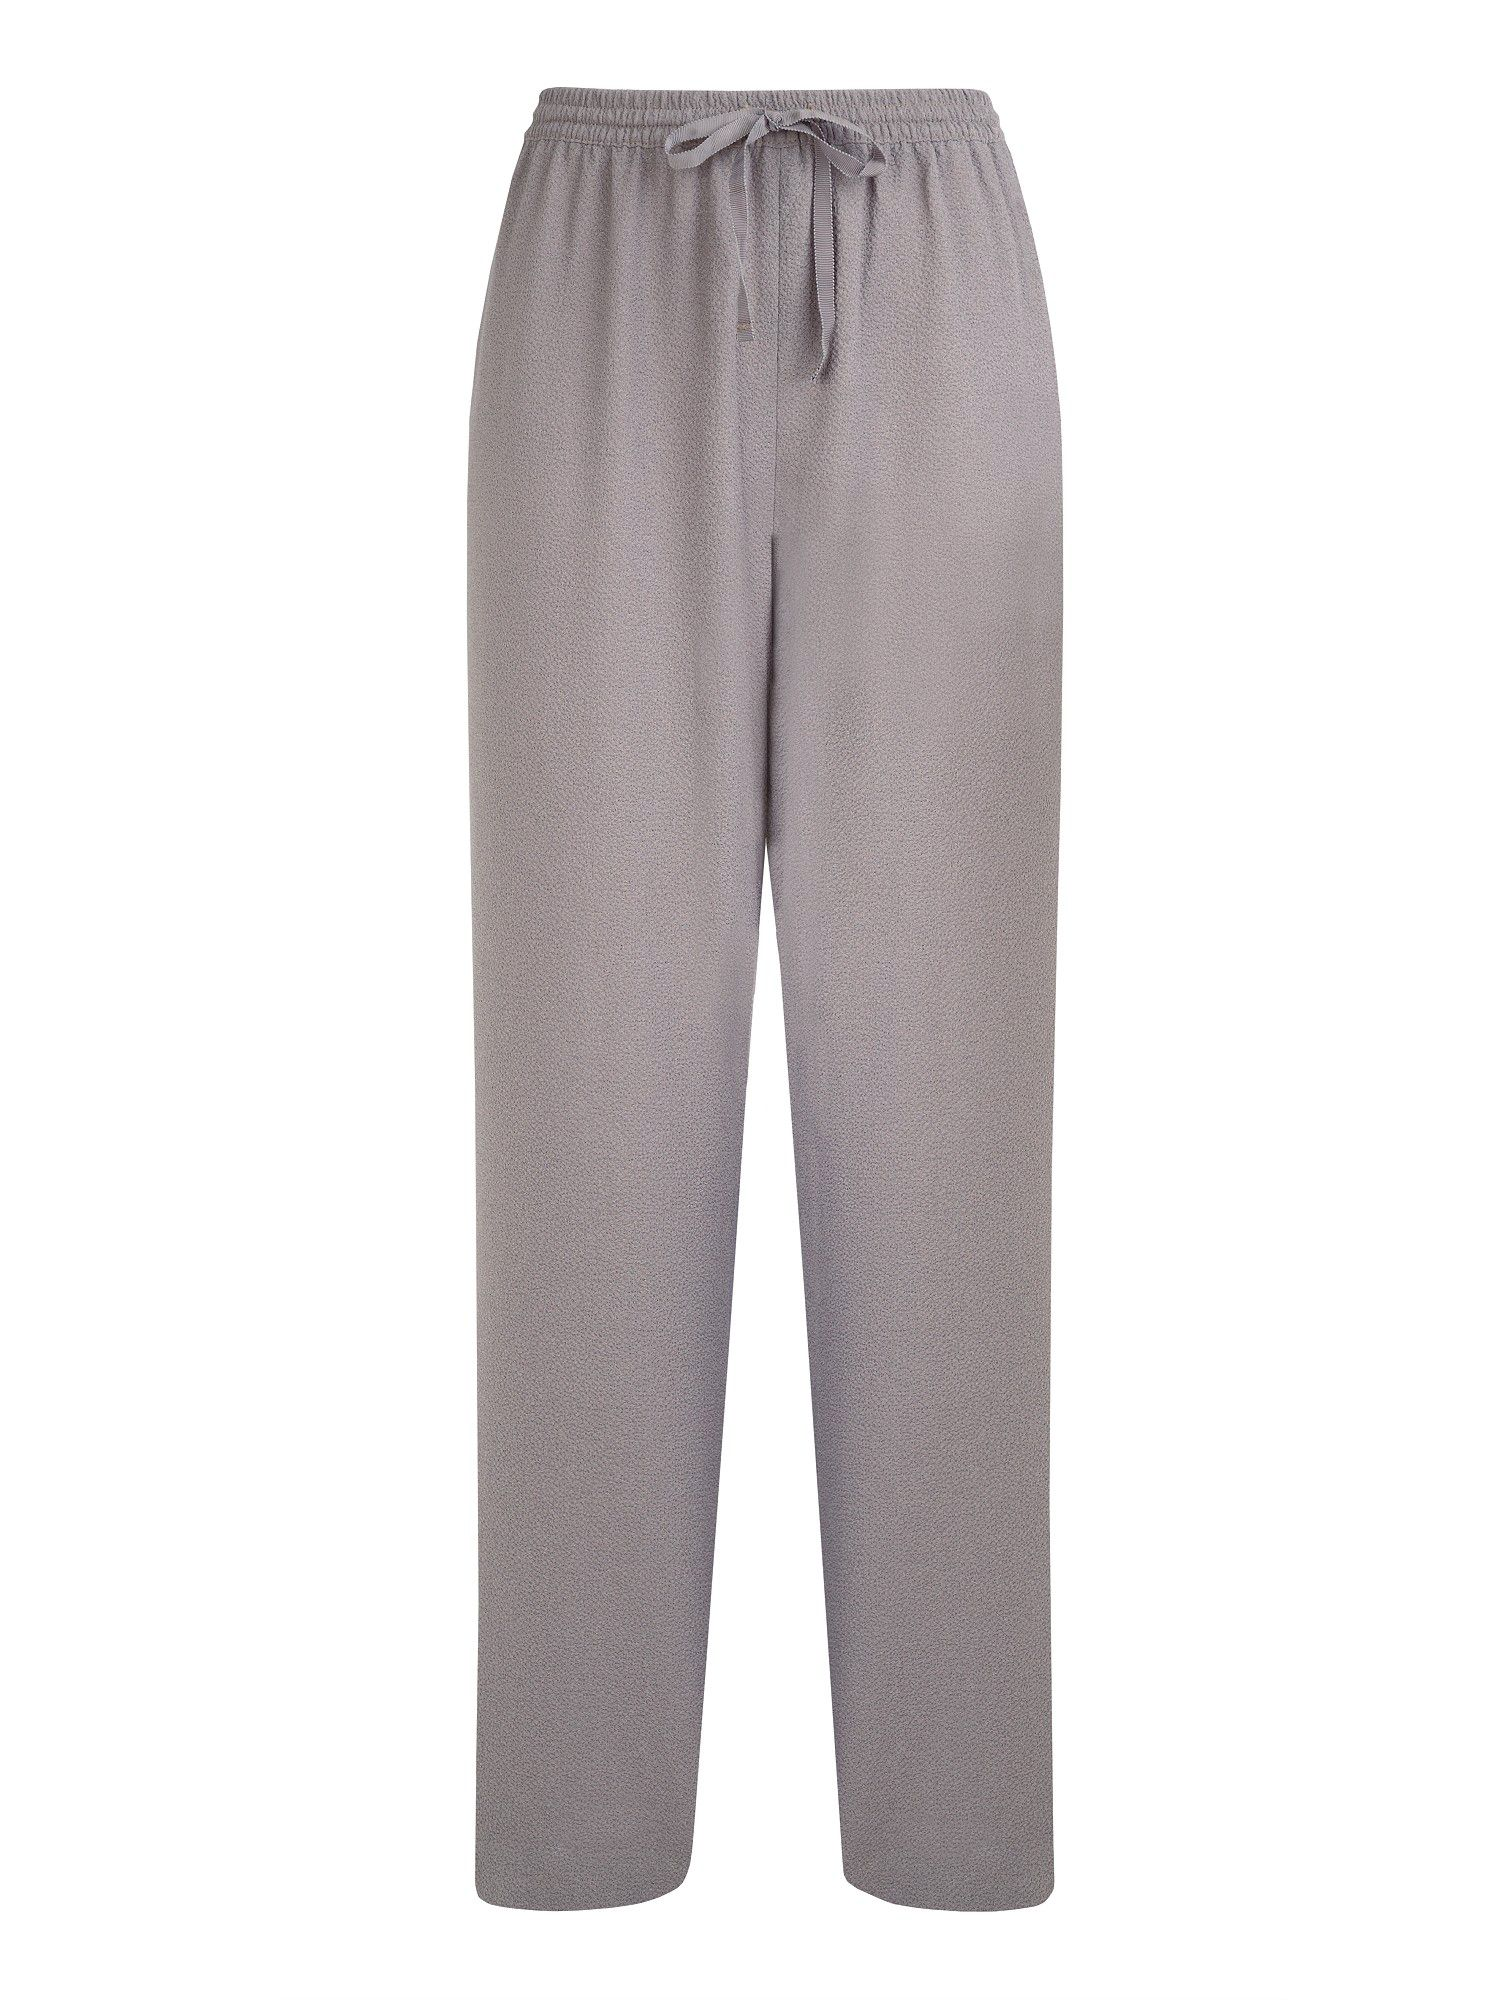 Mole textured trouser